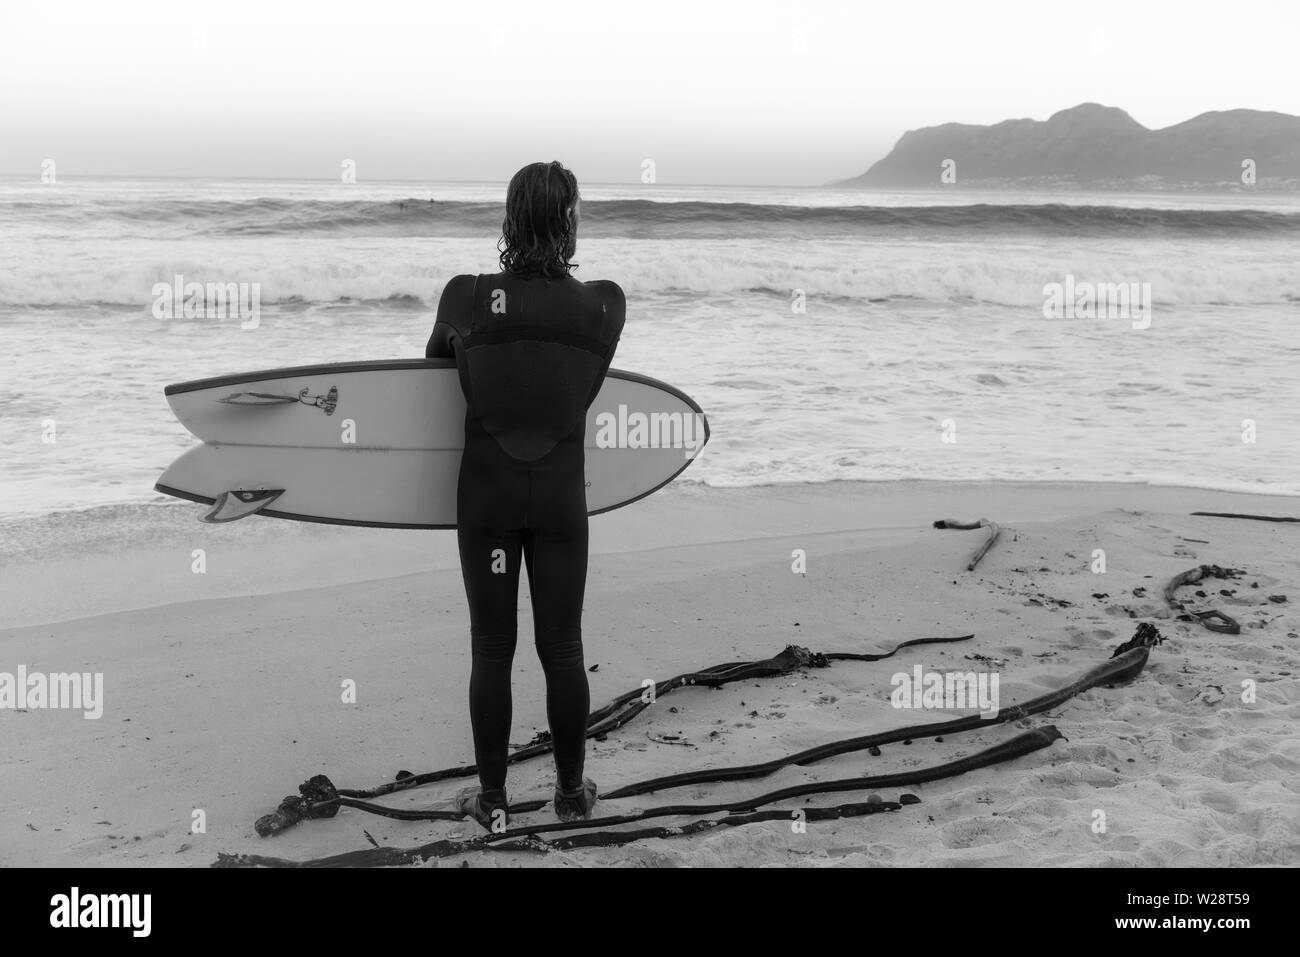 A surfer at St James on Danger Beach contemplates returning into the sea while watching another set of waves on South Africa's Cape Peninsula - Stock Image